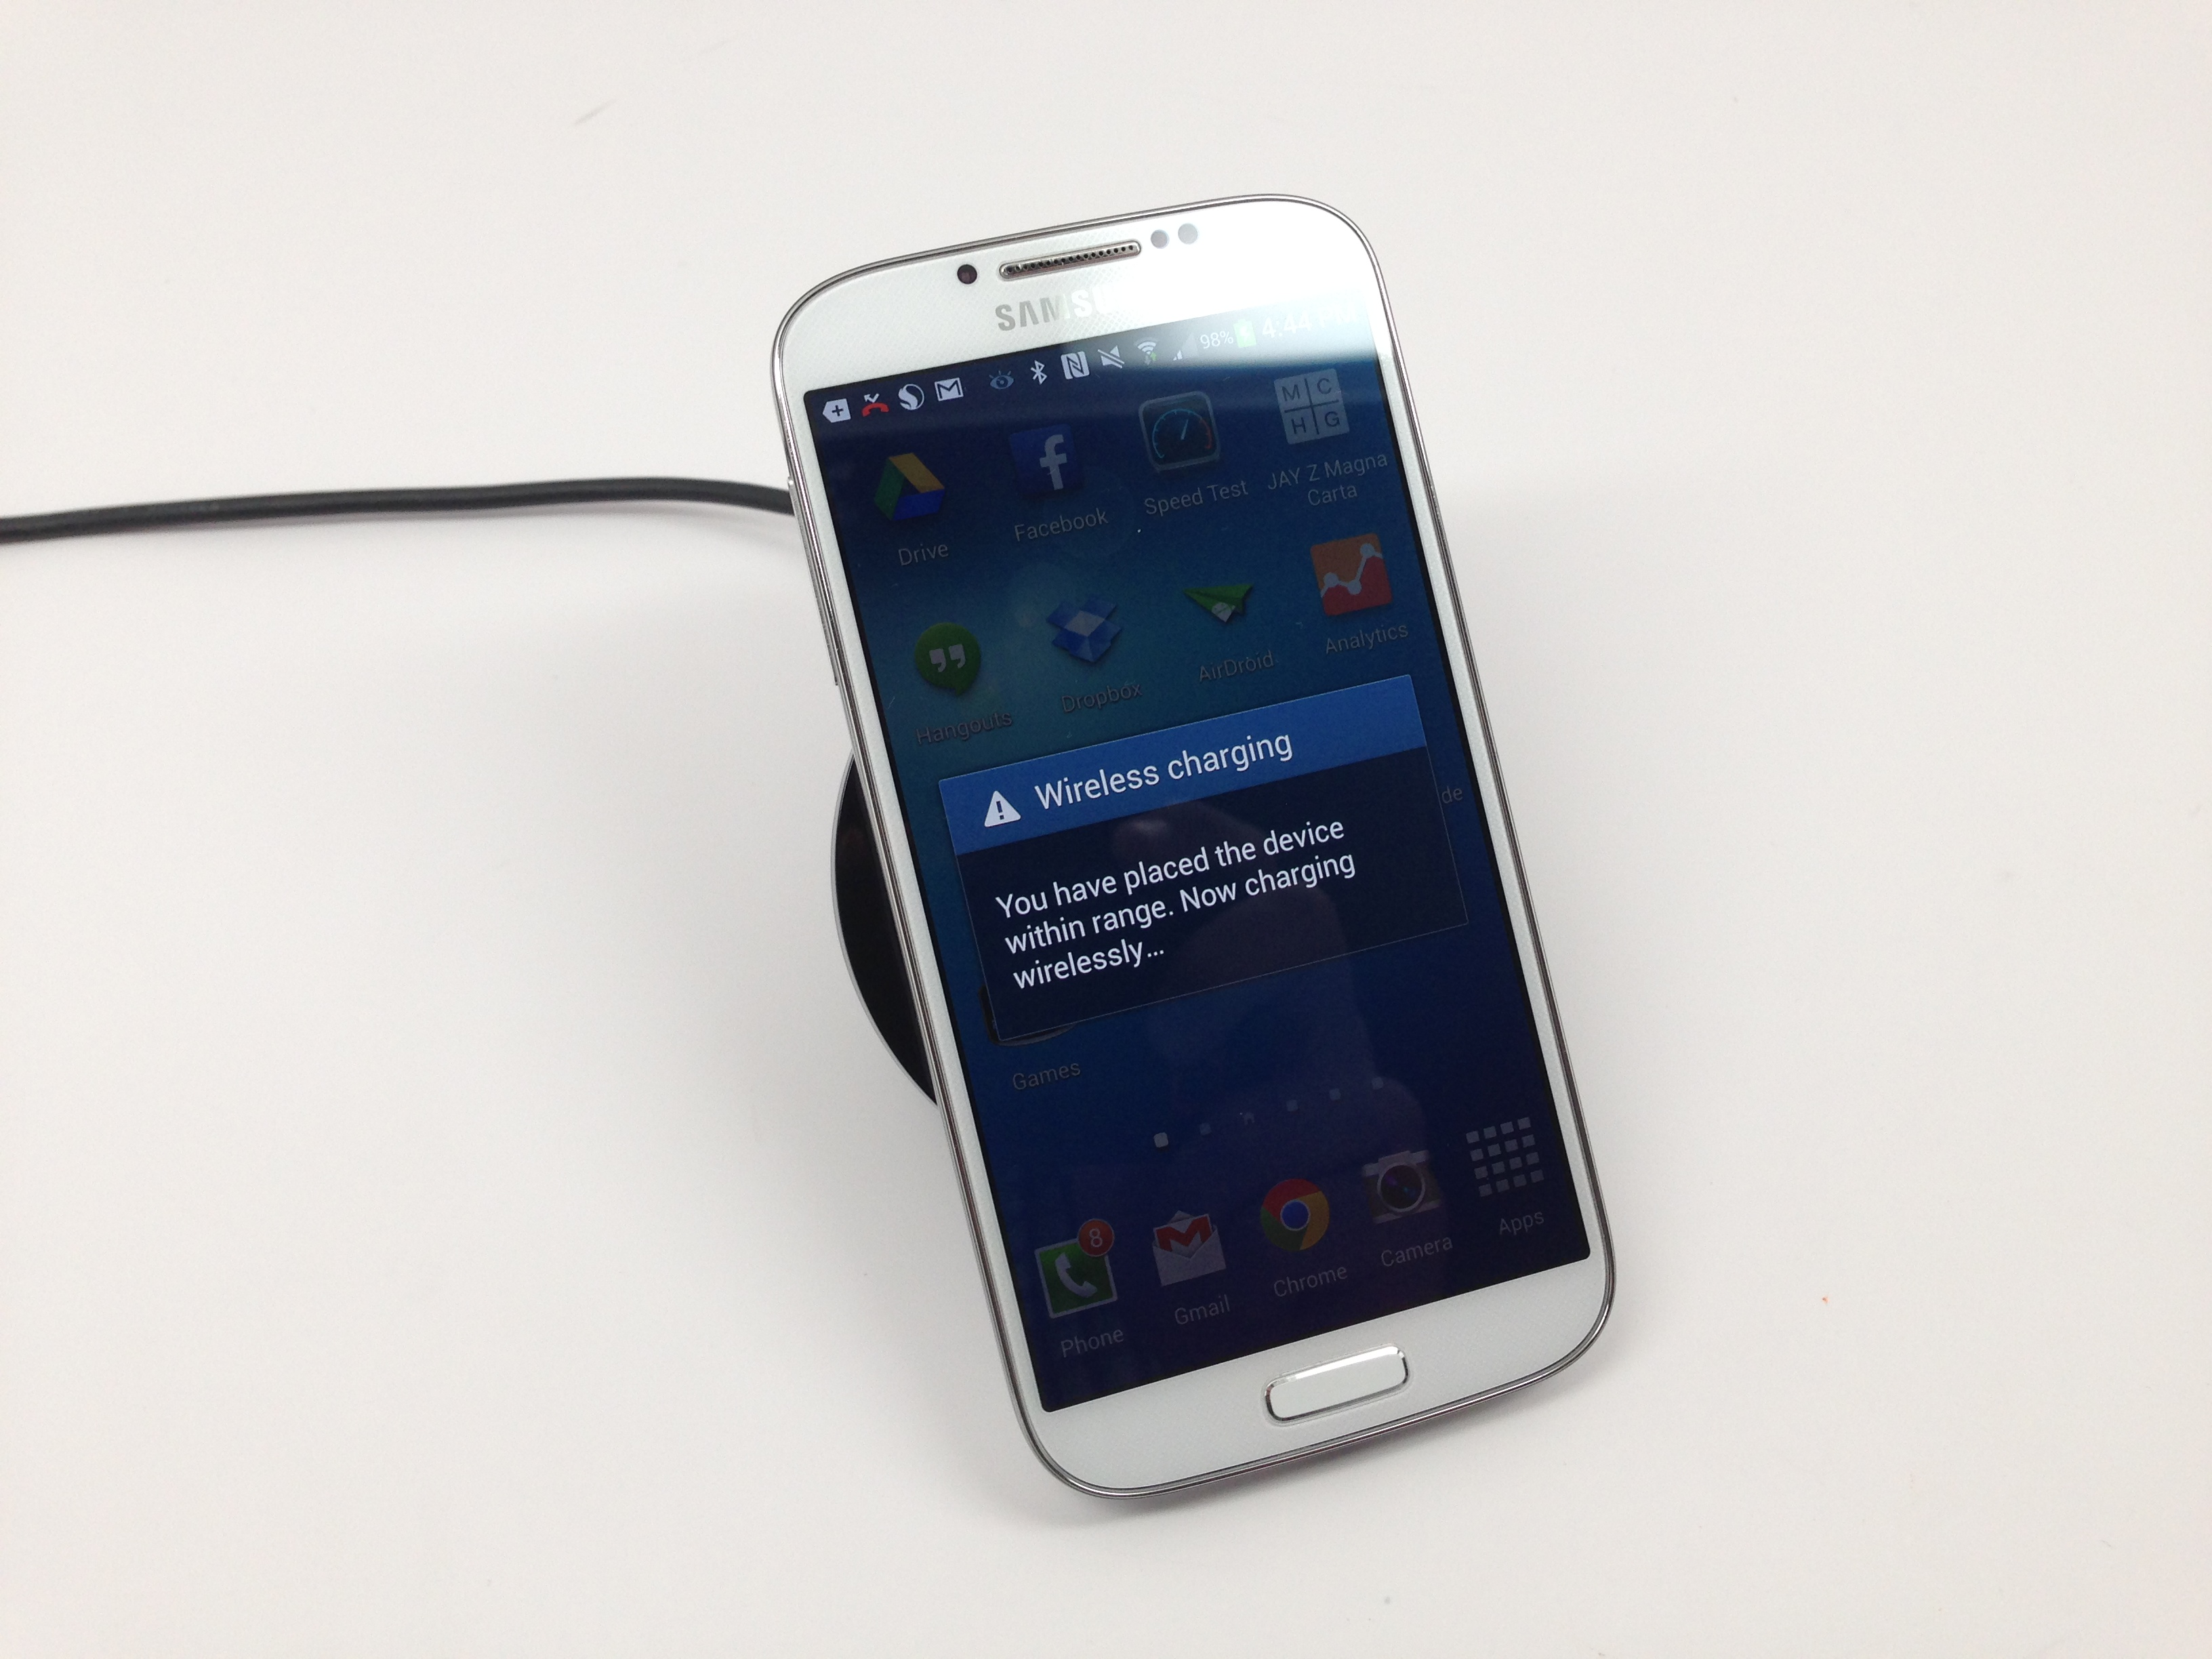 The Samsung Galaxy S5 features are dropping as rumors cannot match reality.